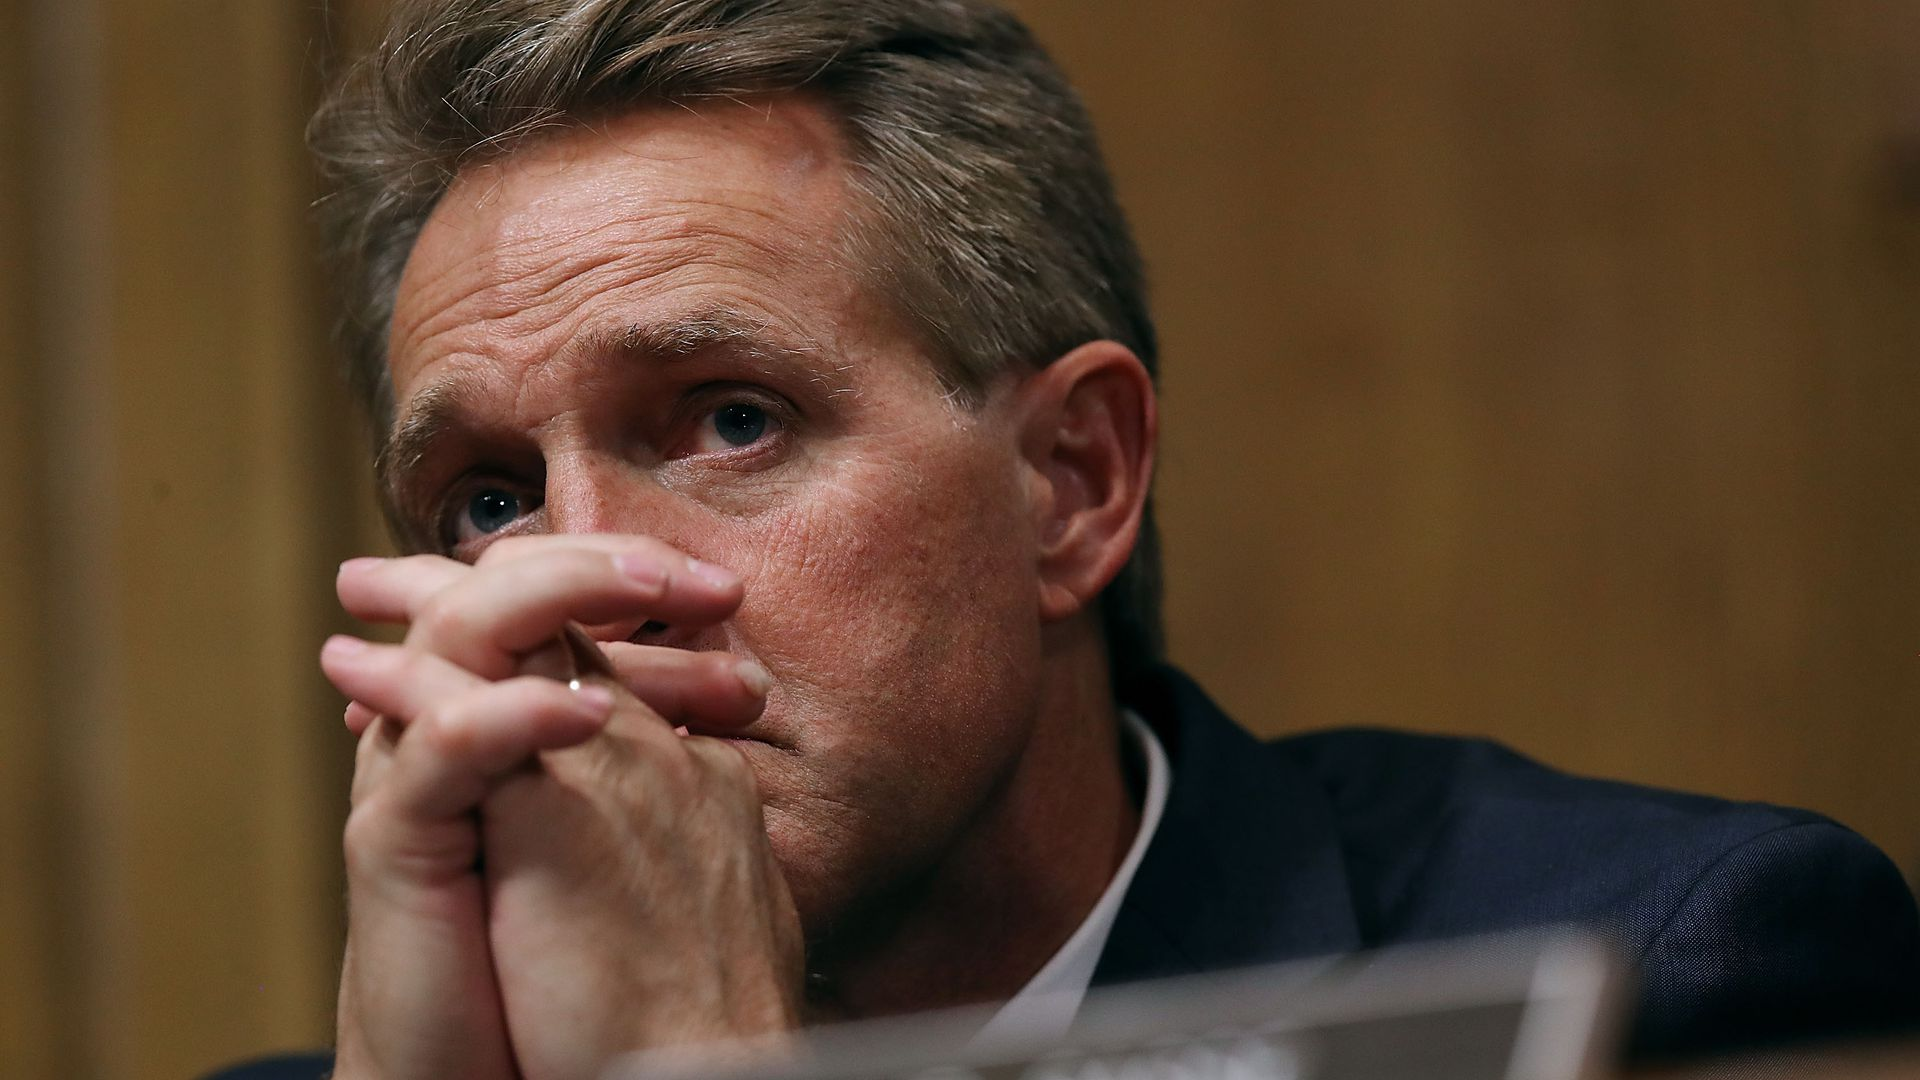 Jeff Flake with his hands intertwined touching his face.